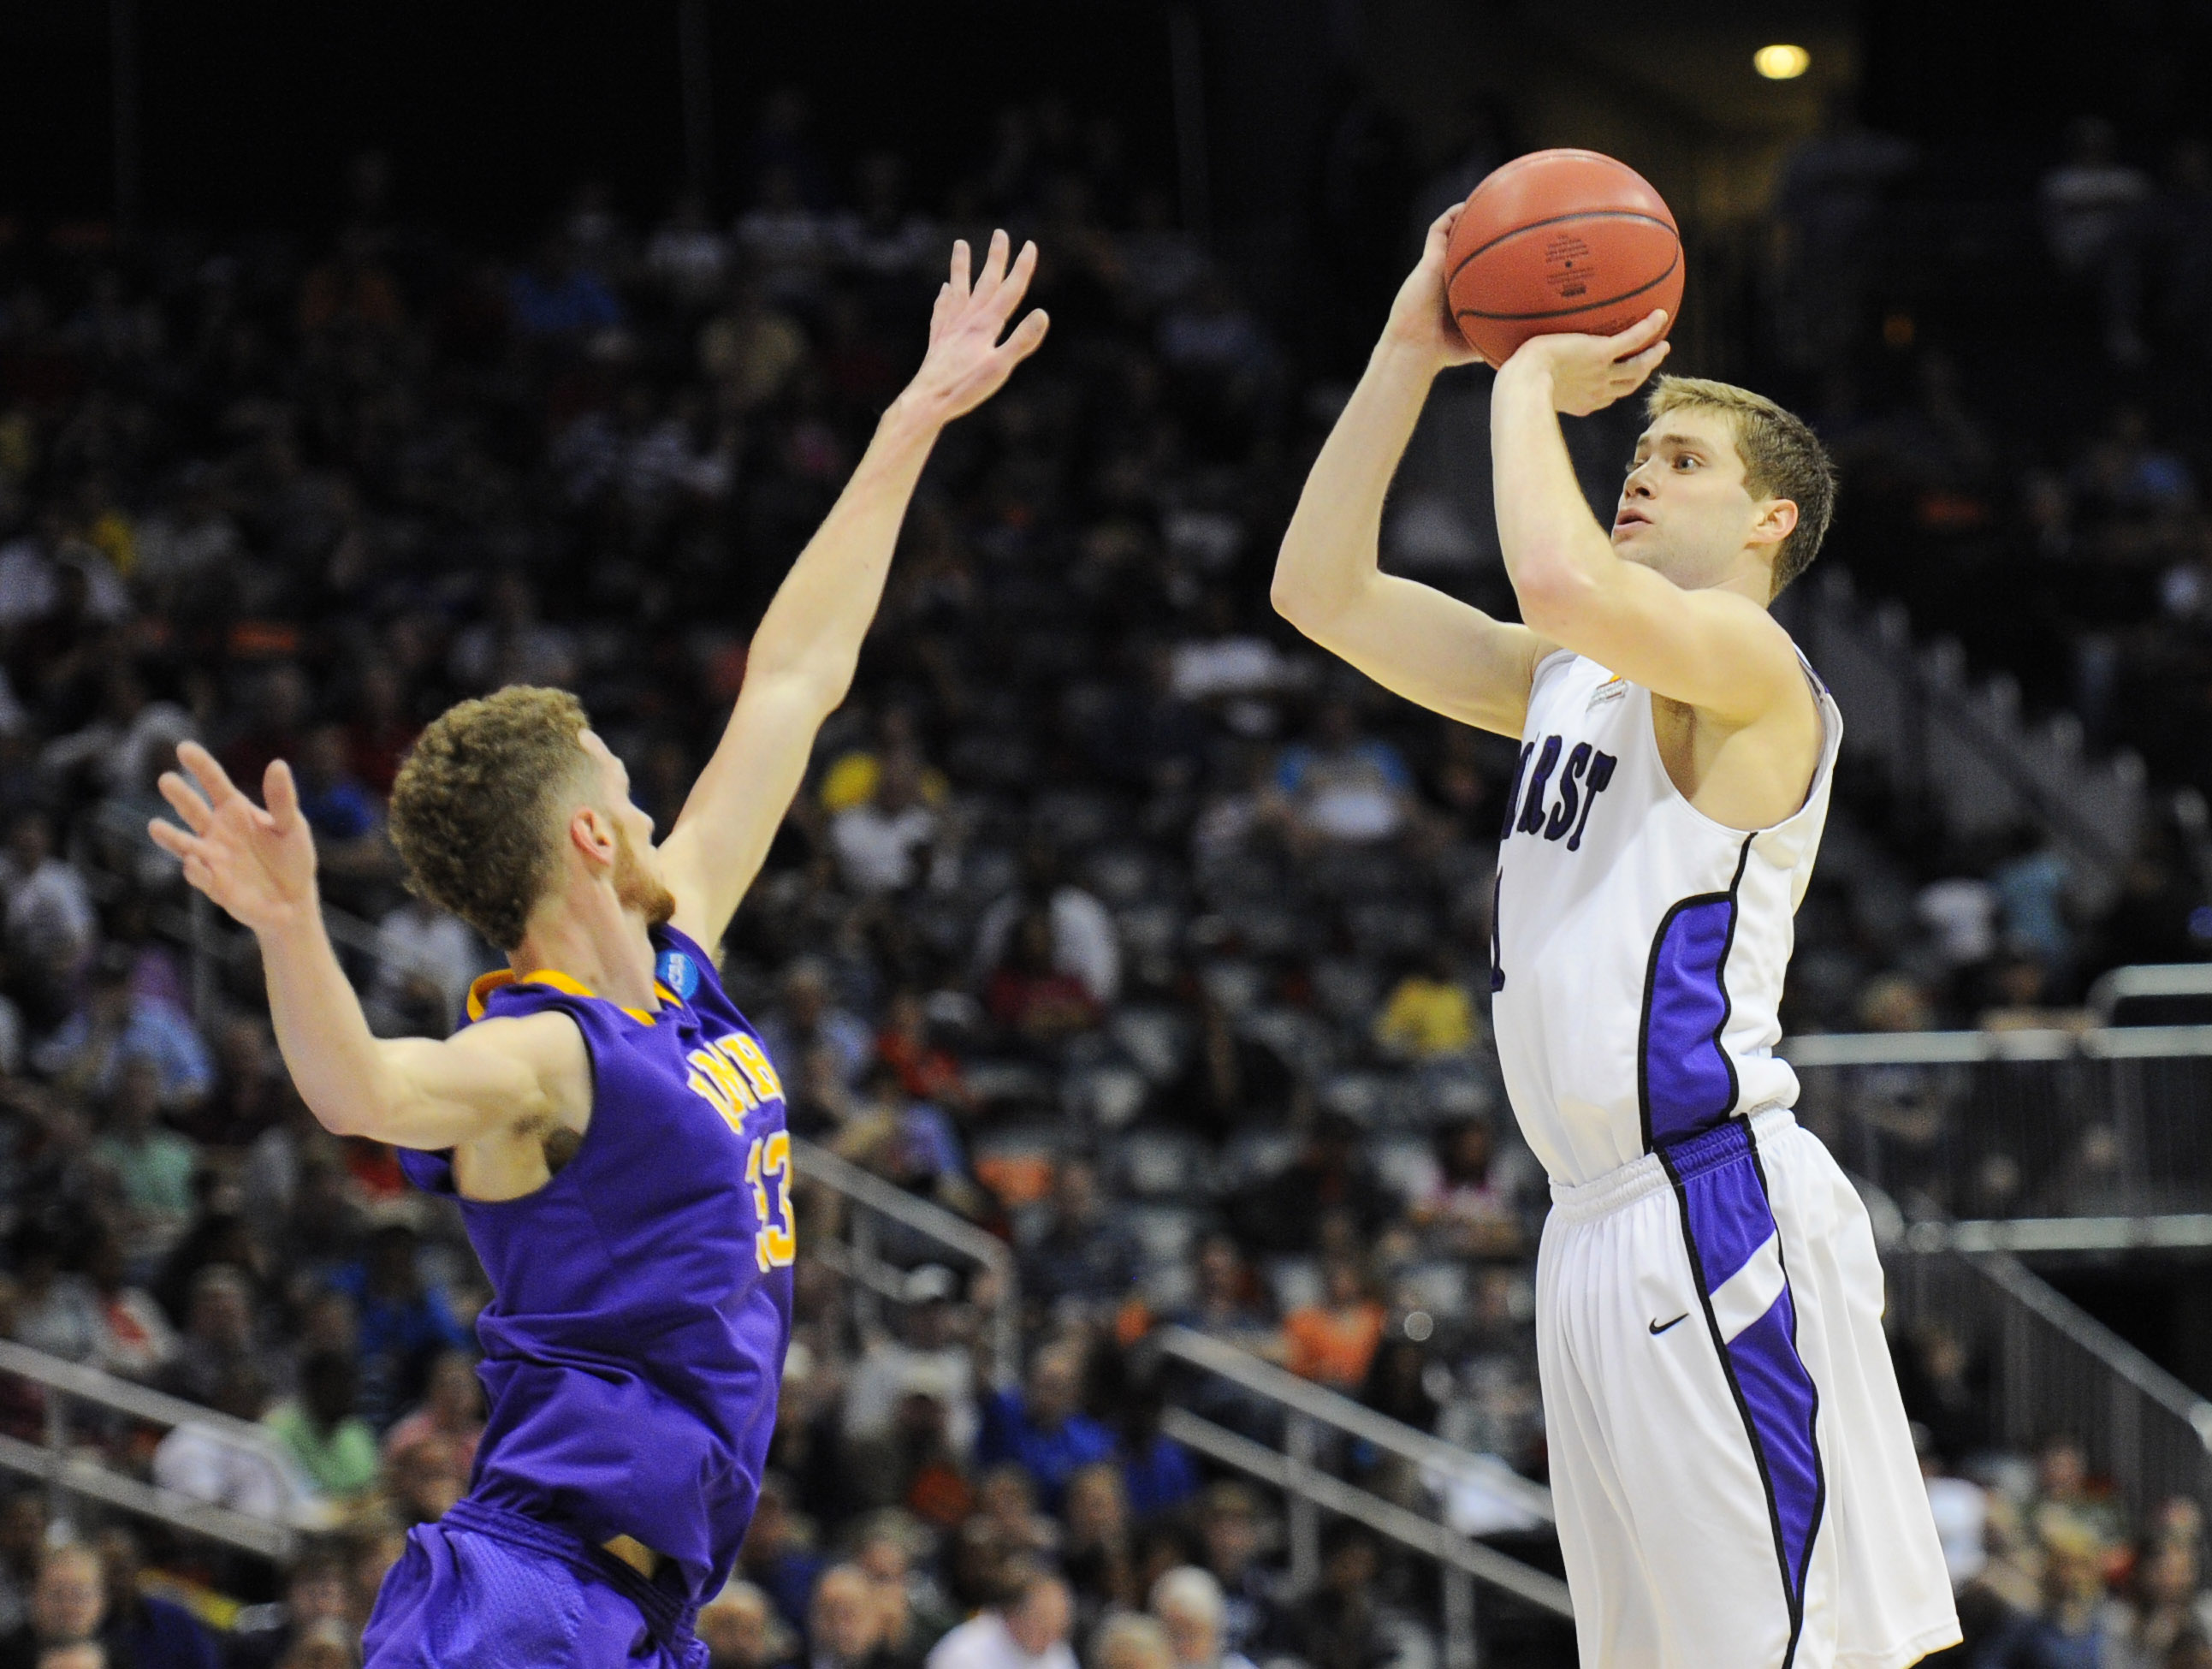 Aaron Toomey shoots over Mary Hardin-Baylor's Cory Meals in Sunday's DIII title game. (USA TODAY Sports)